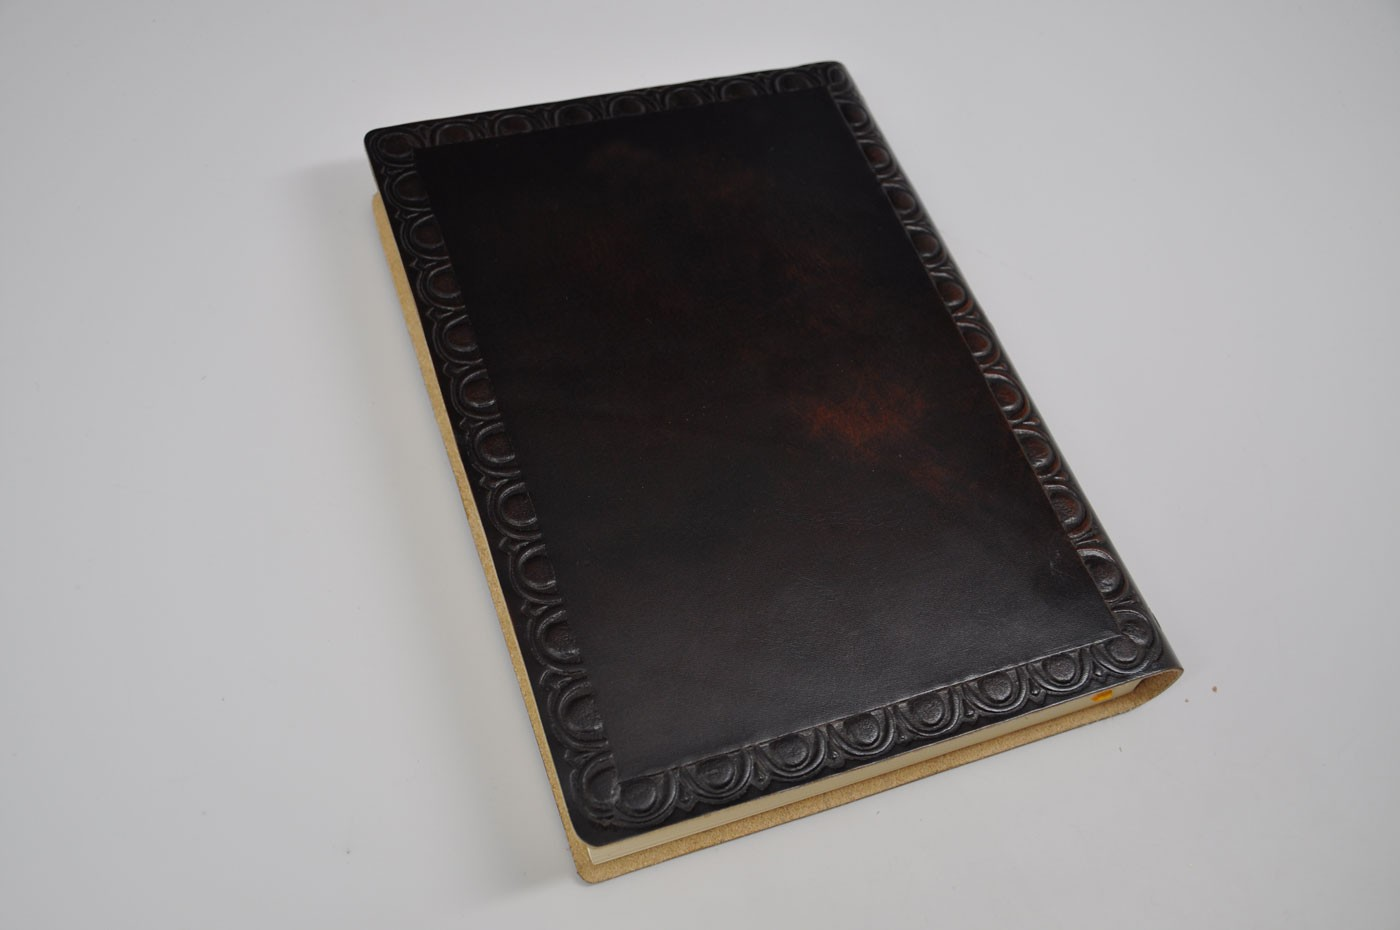 Old Leather Journal With Key Additional Images  click image